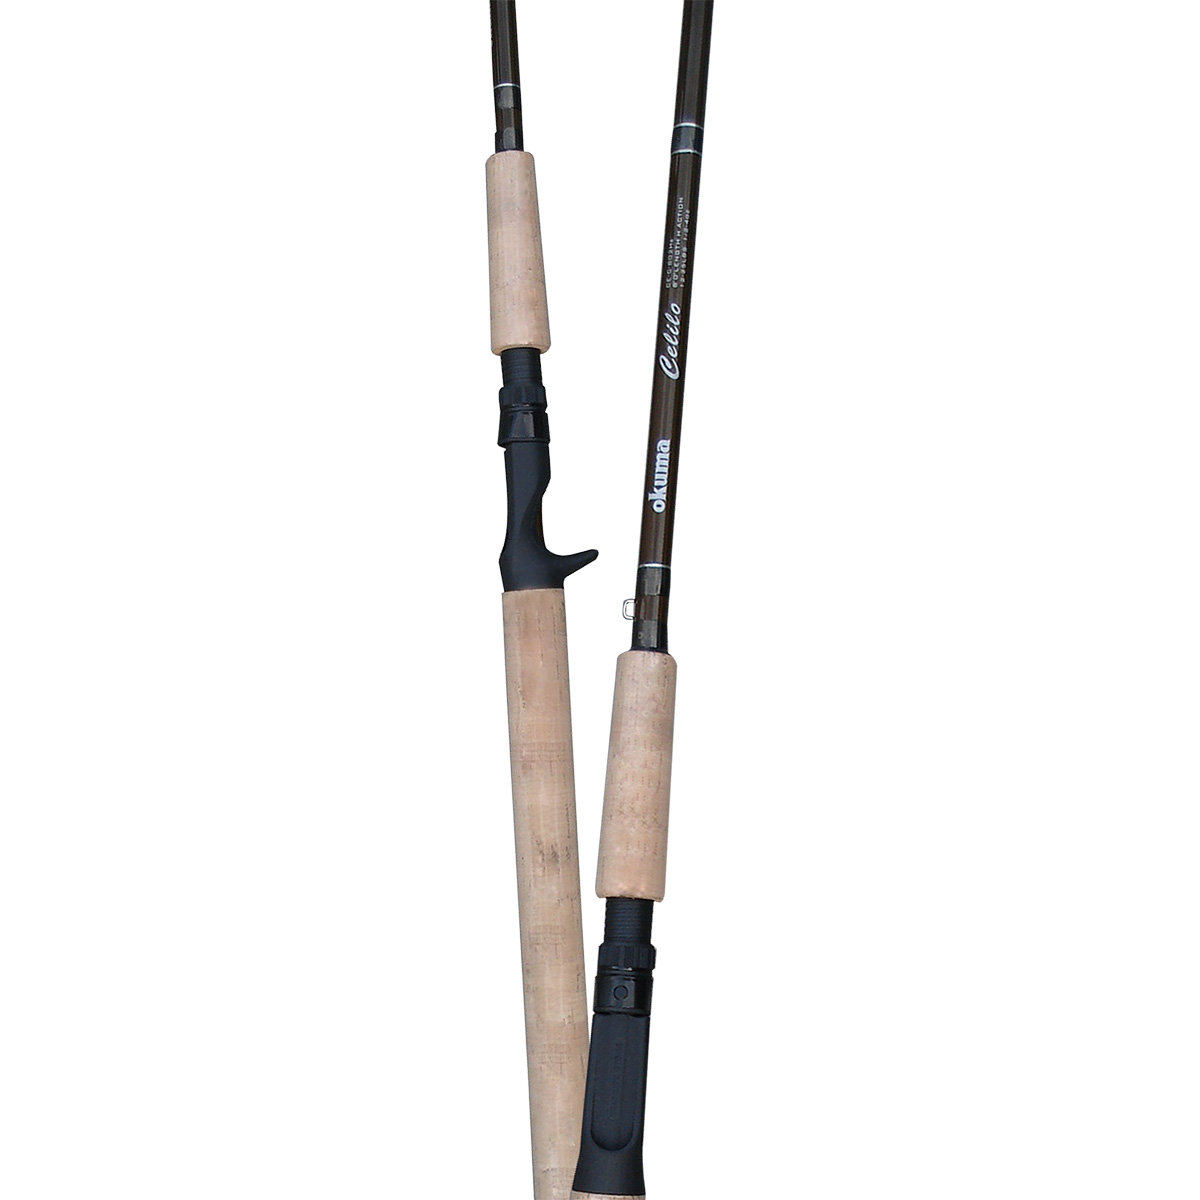 Fishing Rods And Reels Celilo Graphite Rod Manufacturer